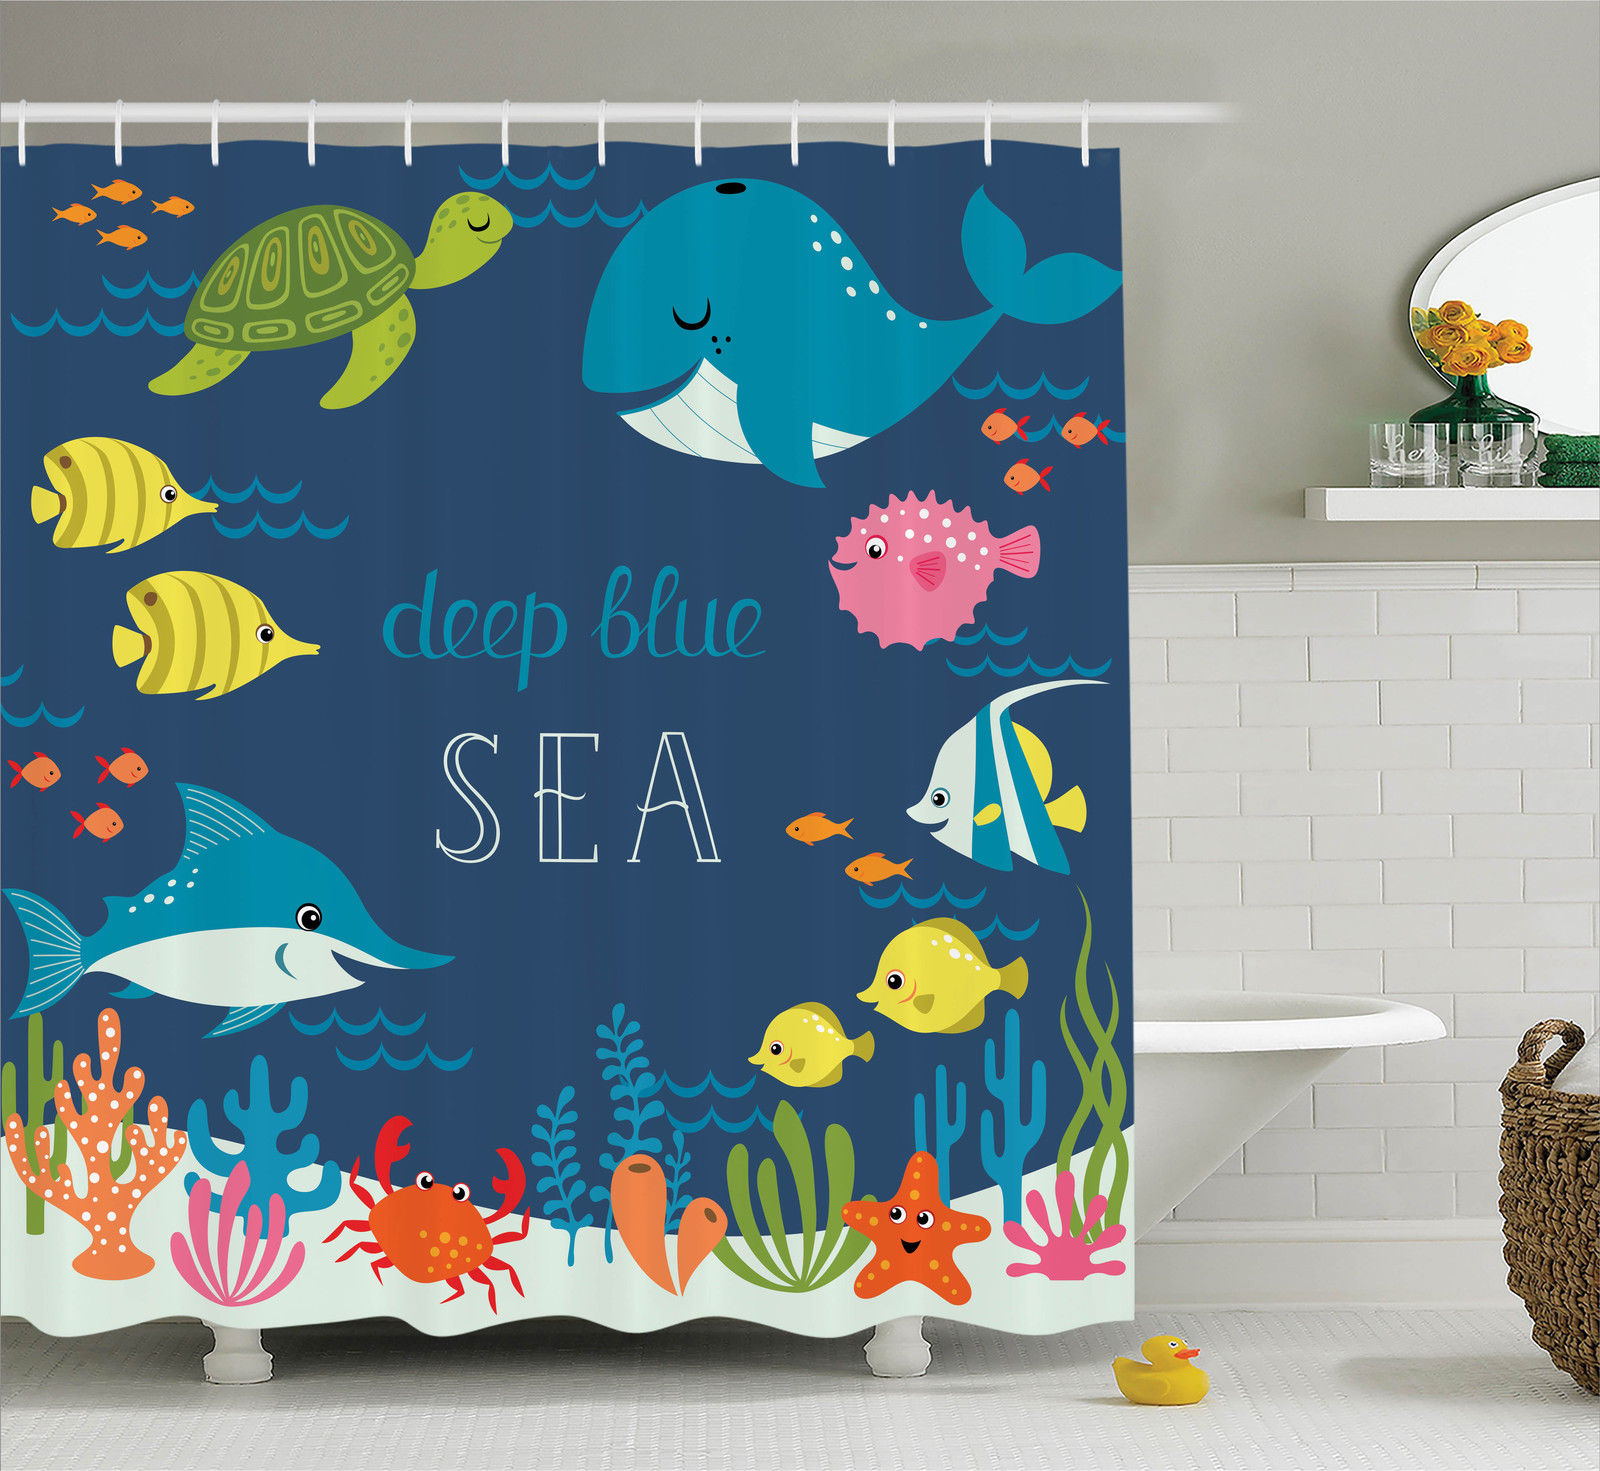 Cartoon Decor Shower Curtain Set, Artsy Underwater Graphic With Algaes Coral Reefs Turtles Sword Fishes The Life Aquatic Motion, Bathroom Accessories, 69W X 70L Inches, By Ambesonne